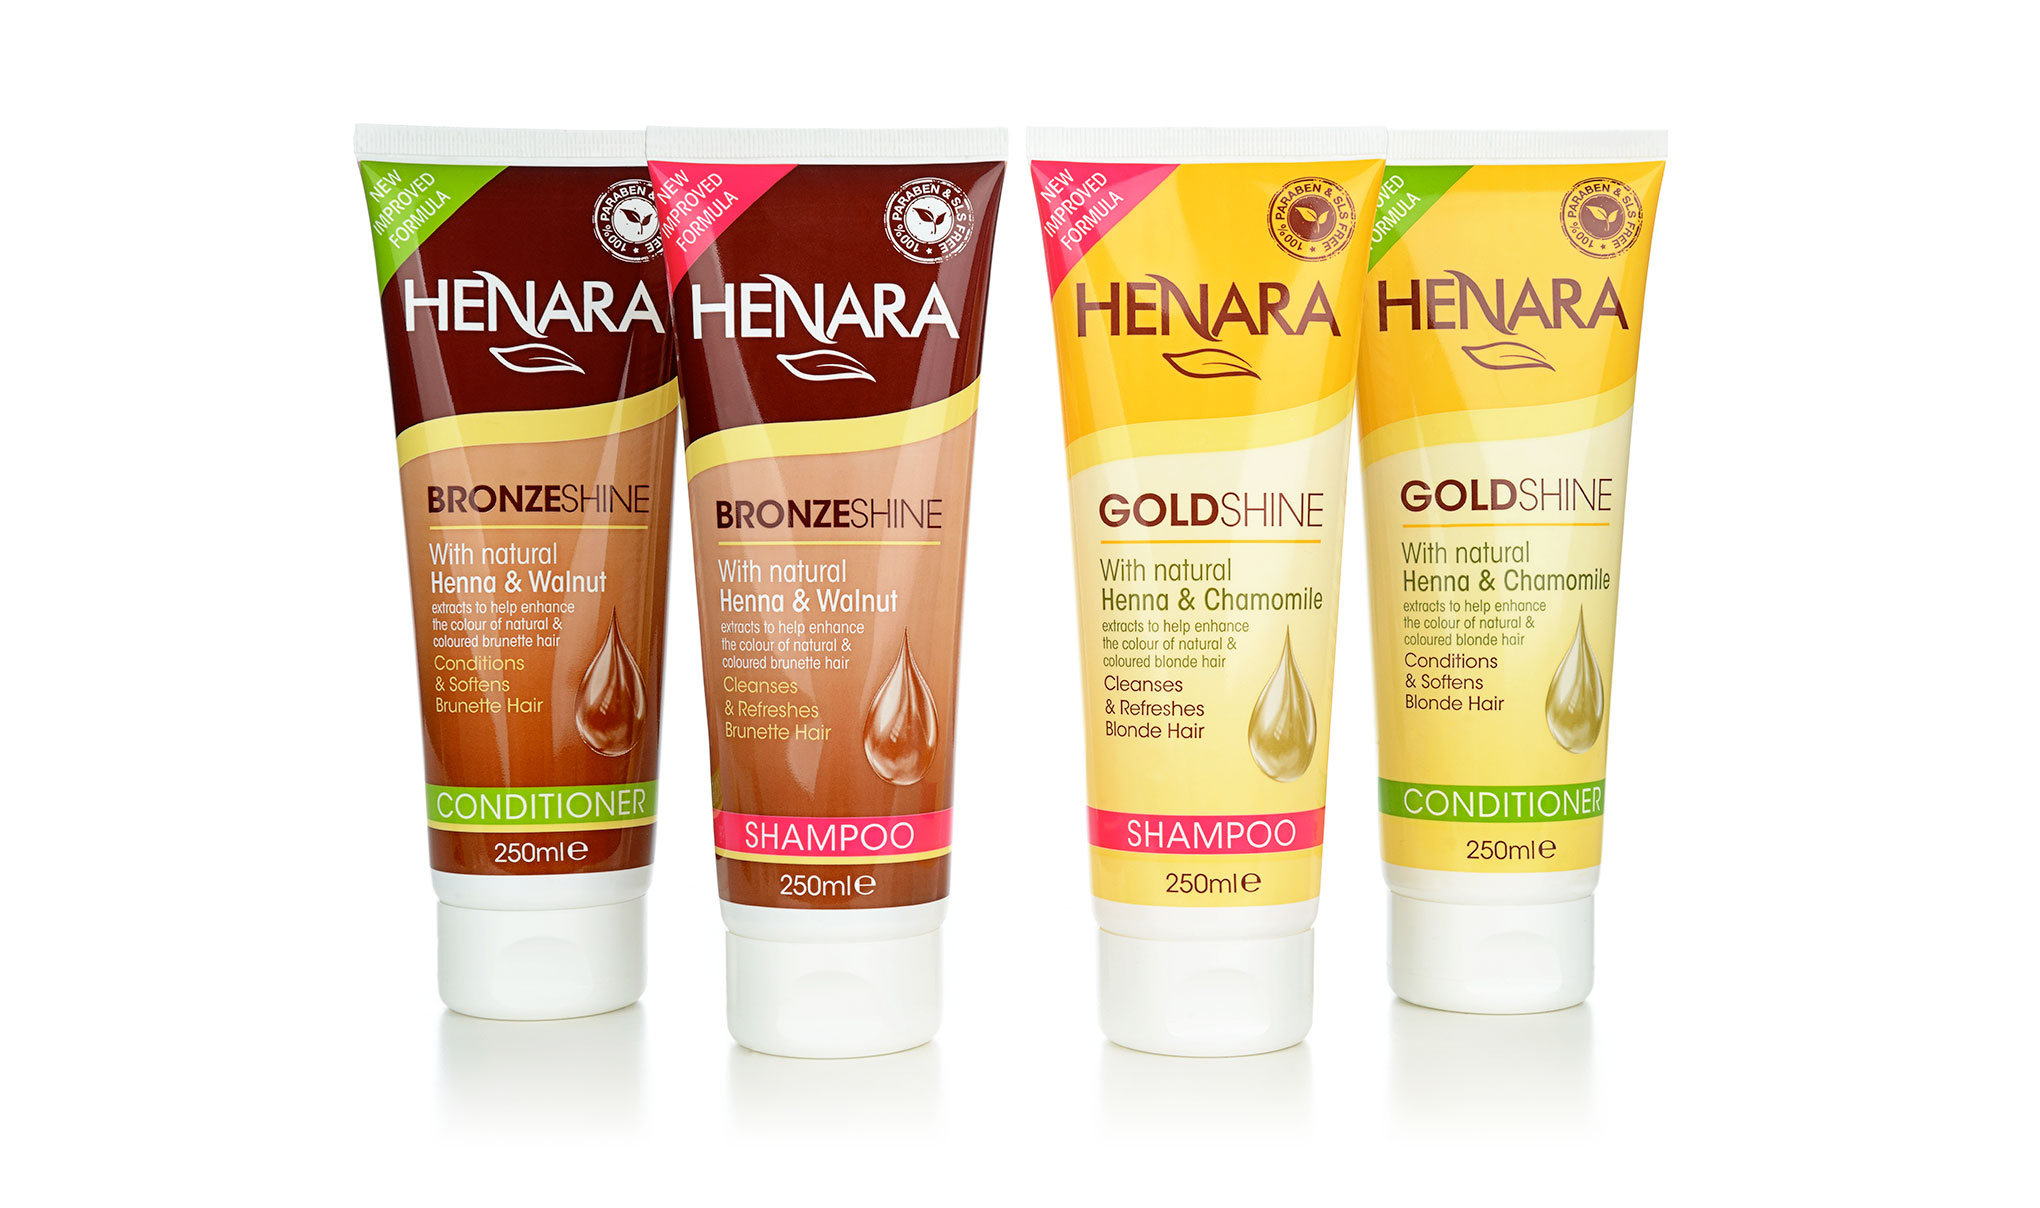 Haircare packaging design for the brand 'Henara'. Image shows shampoo and conditioner for blondes and brunette hair. Designed for Amber House by packaging design agency - Flipflop Design Ltd.